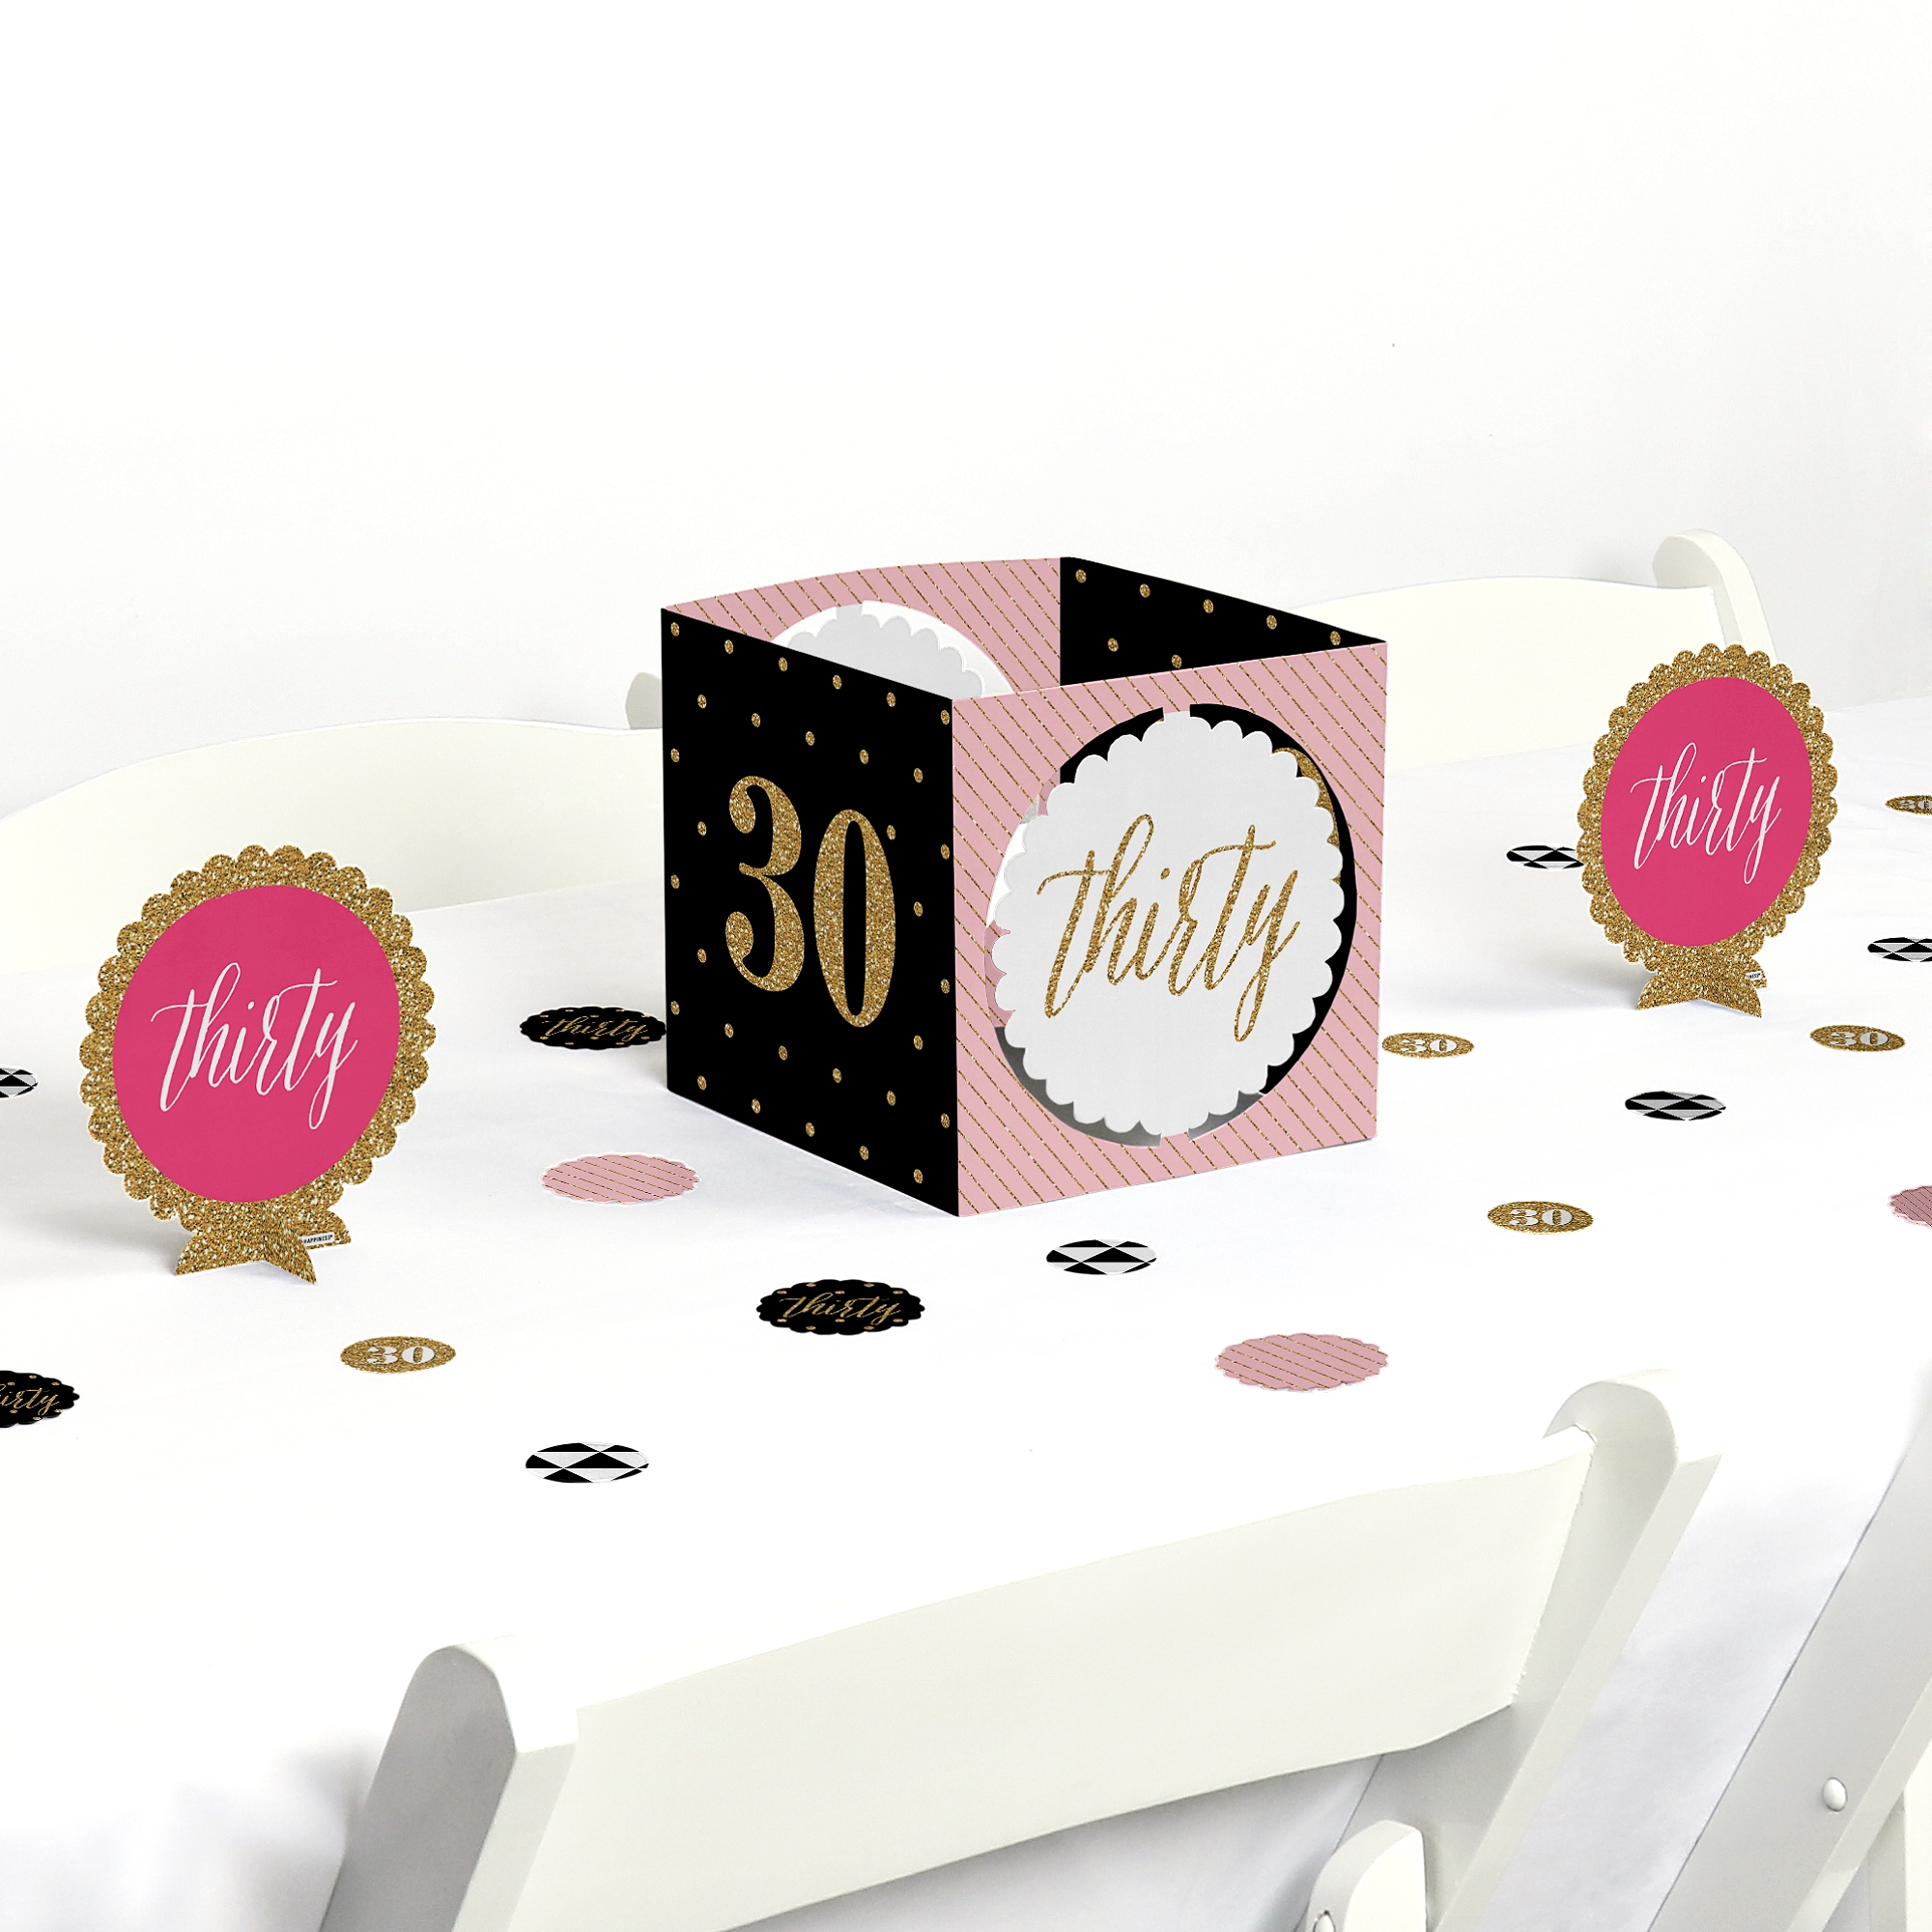 Chic 30th Birthday - Party Centerpiece & Table Decoration Kit